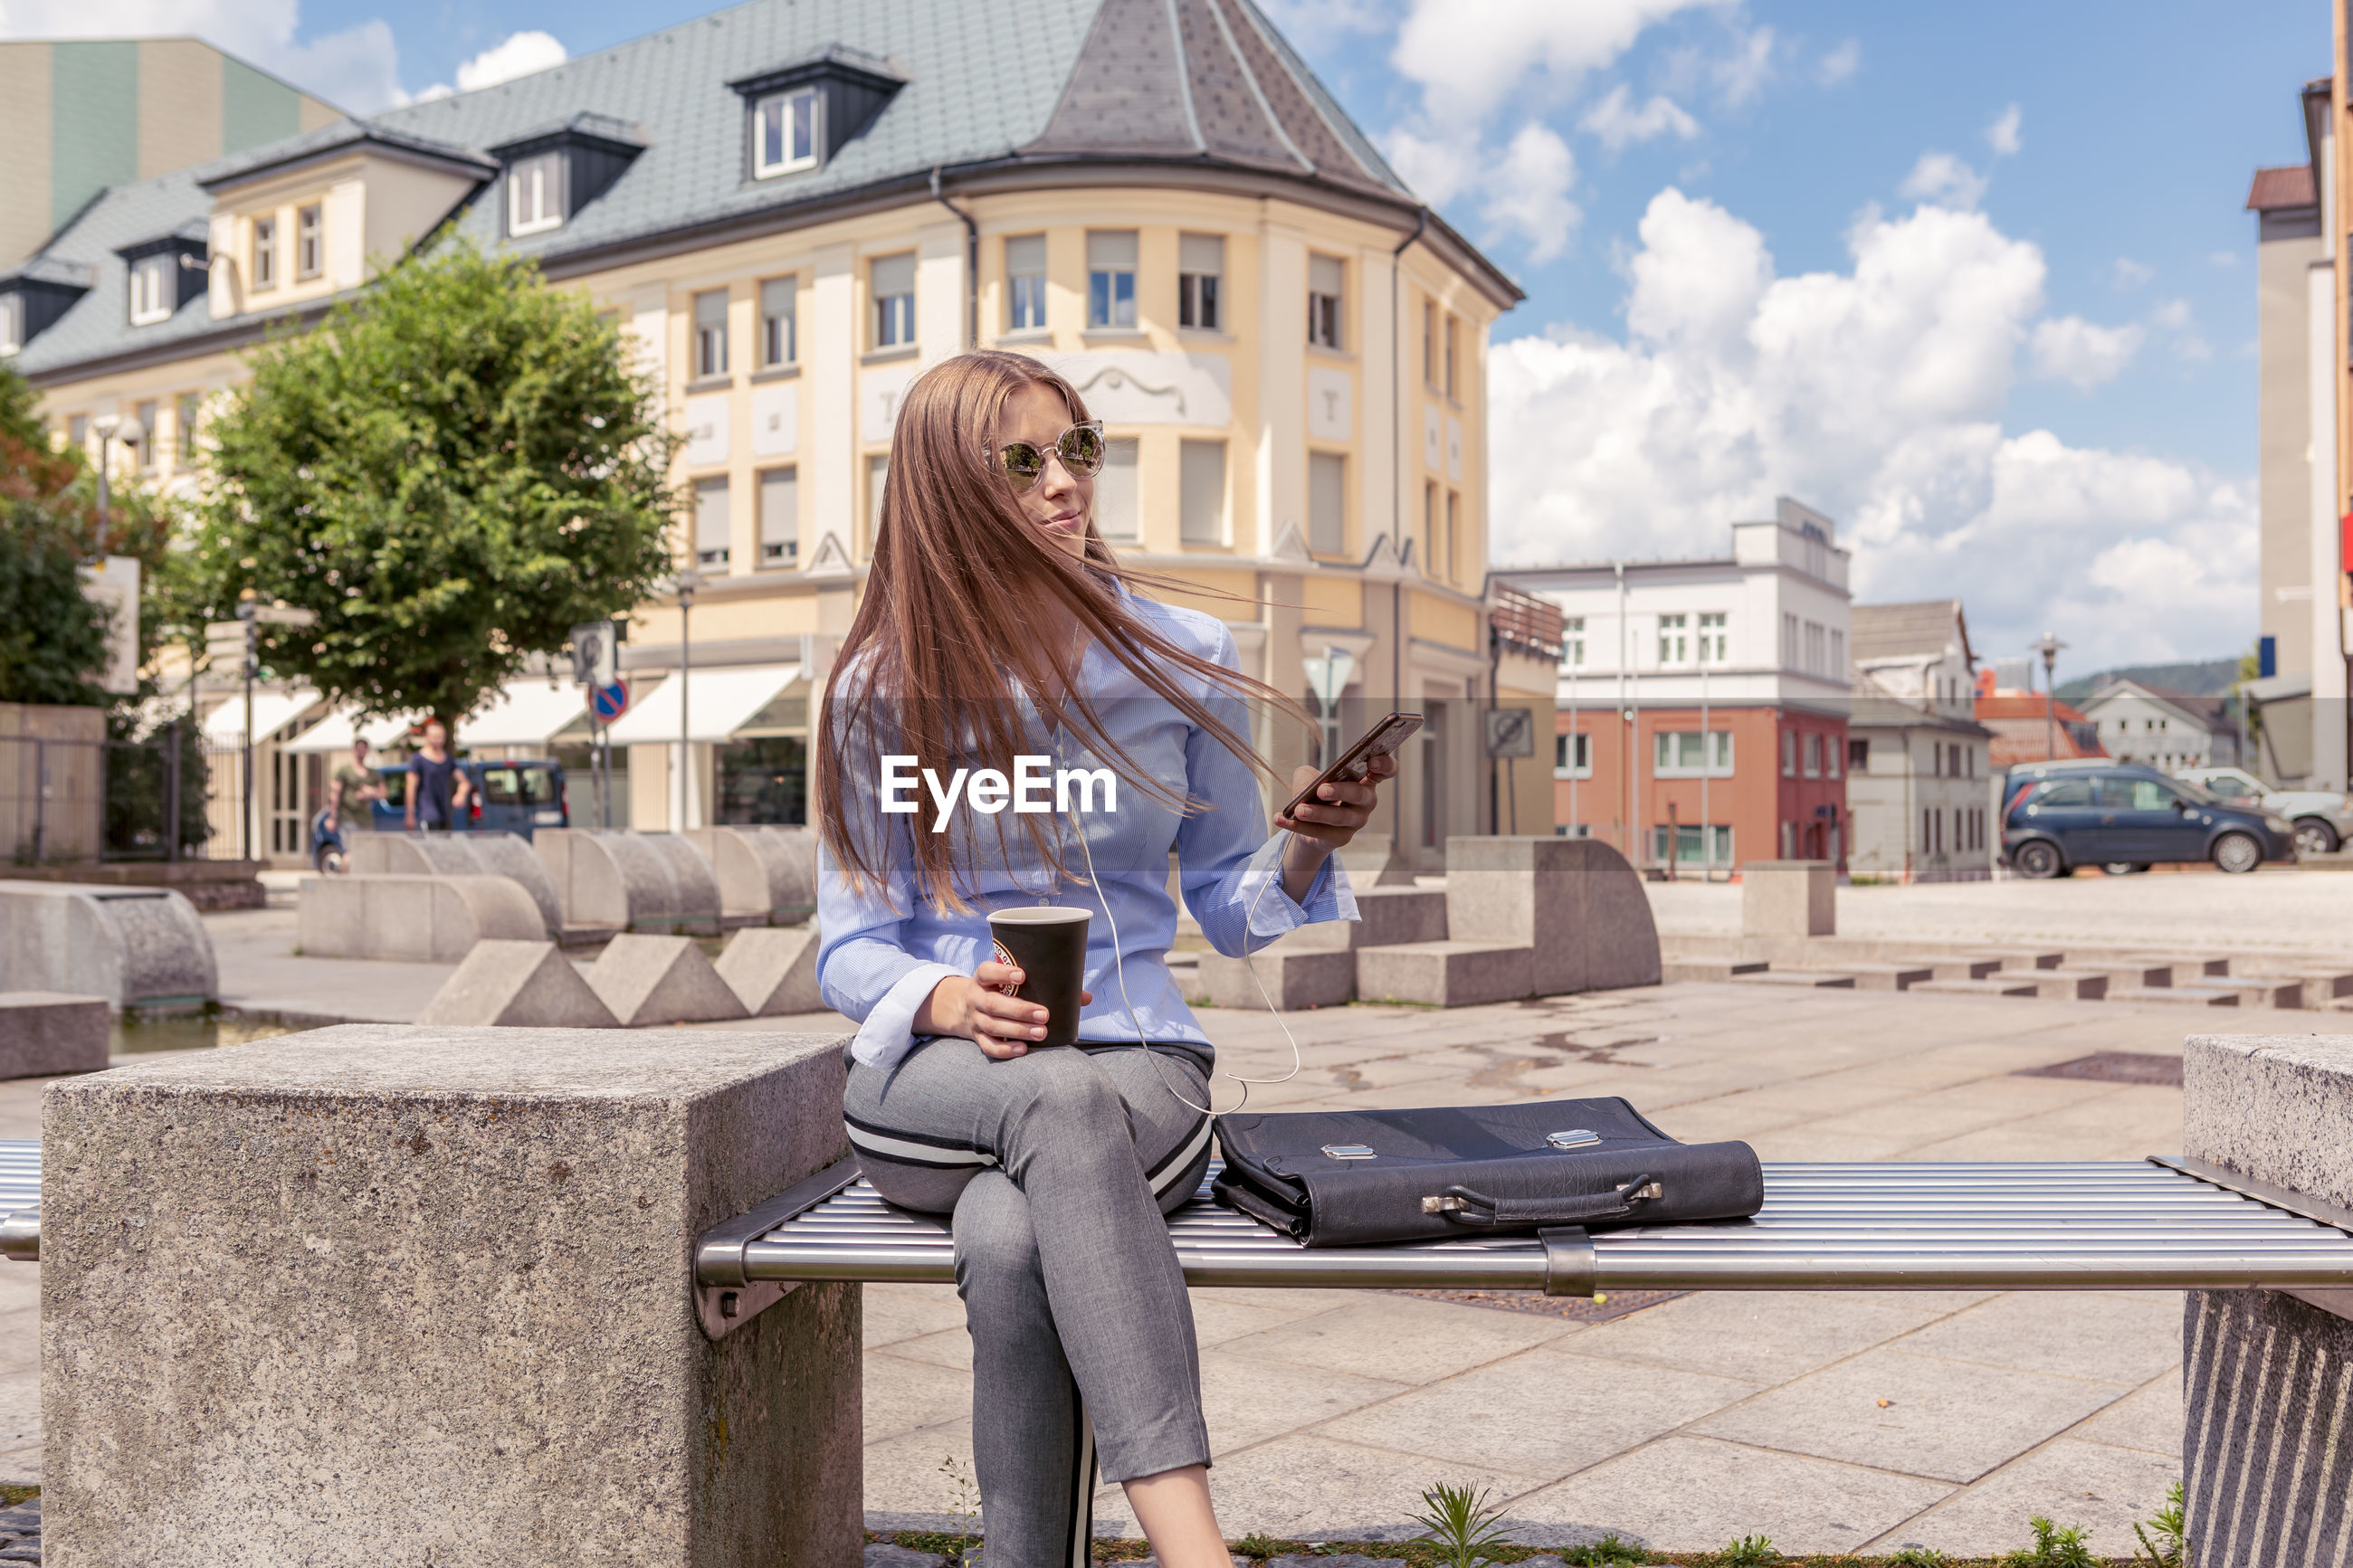 Young woman holding phone while sitting on bench against building